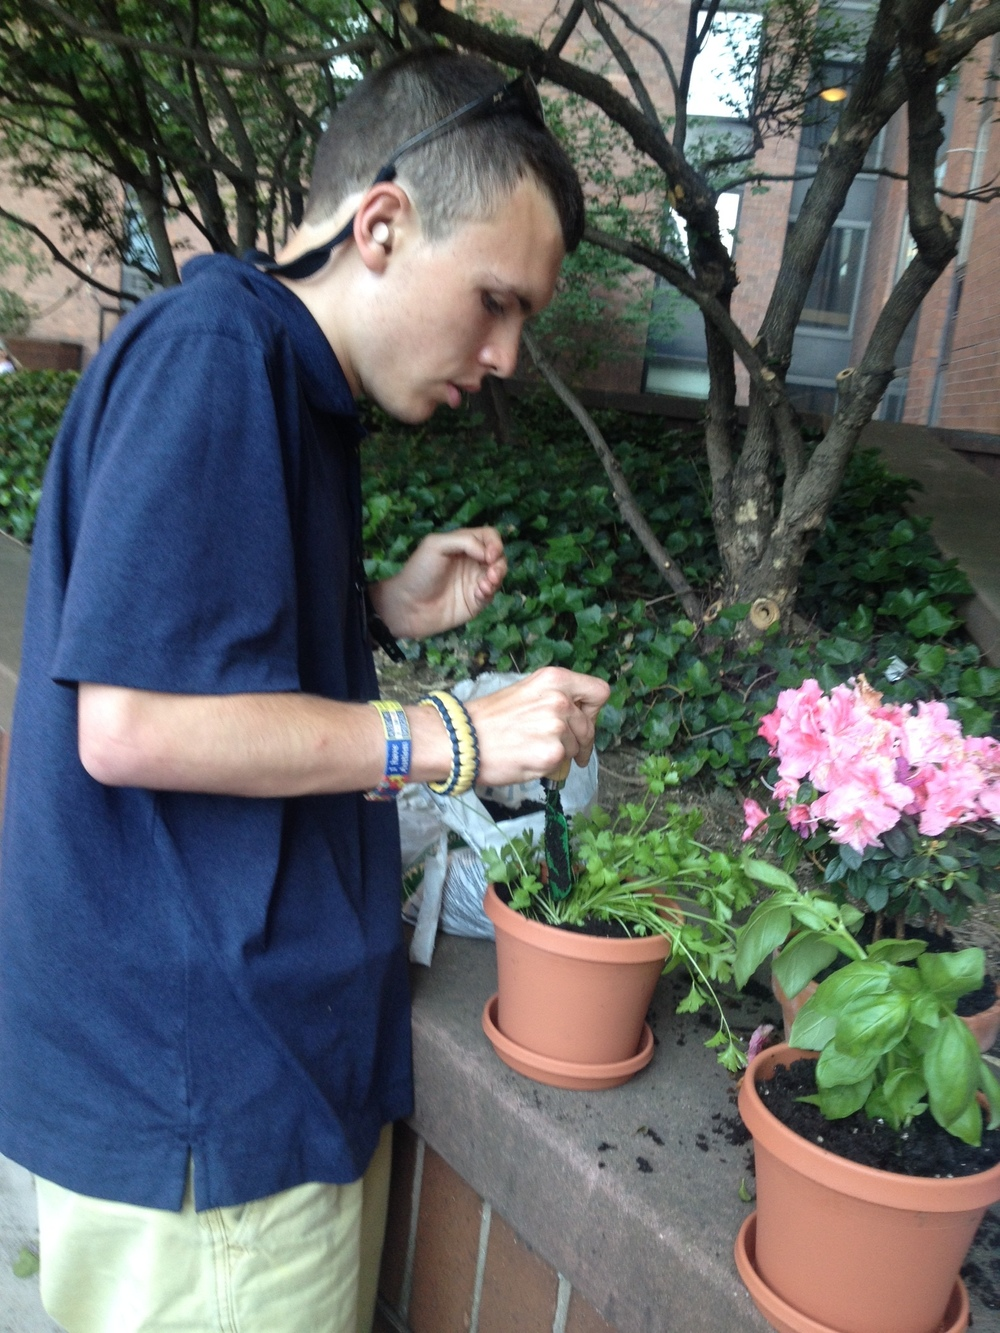 Dustin Sweeney gardening on 91st Street in Manhattan